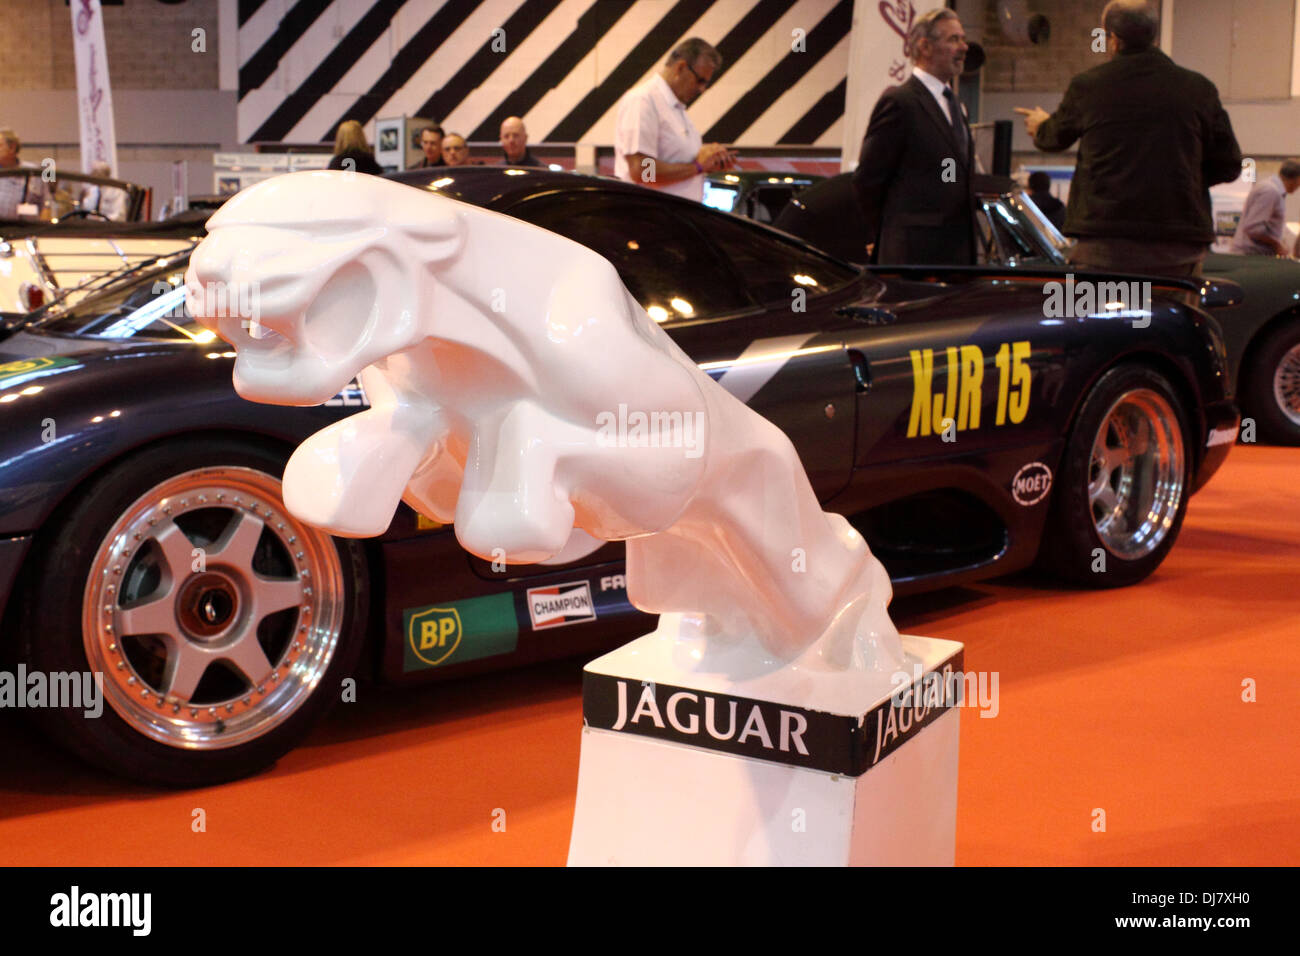 leaping Jaguar model on display in the Jaguar stand at the 2013 Birmingham NEC Classic Car Show - Stock Image